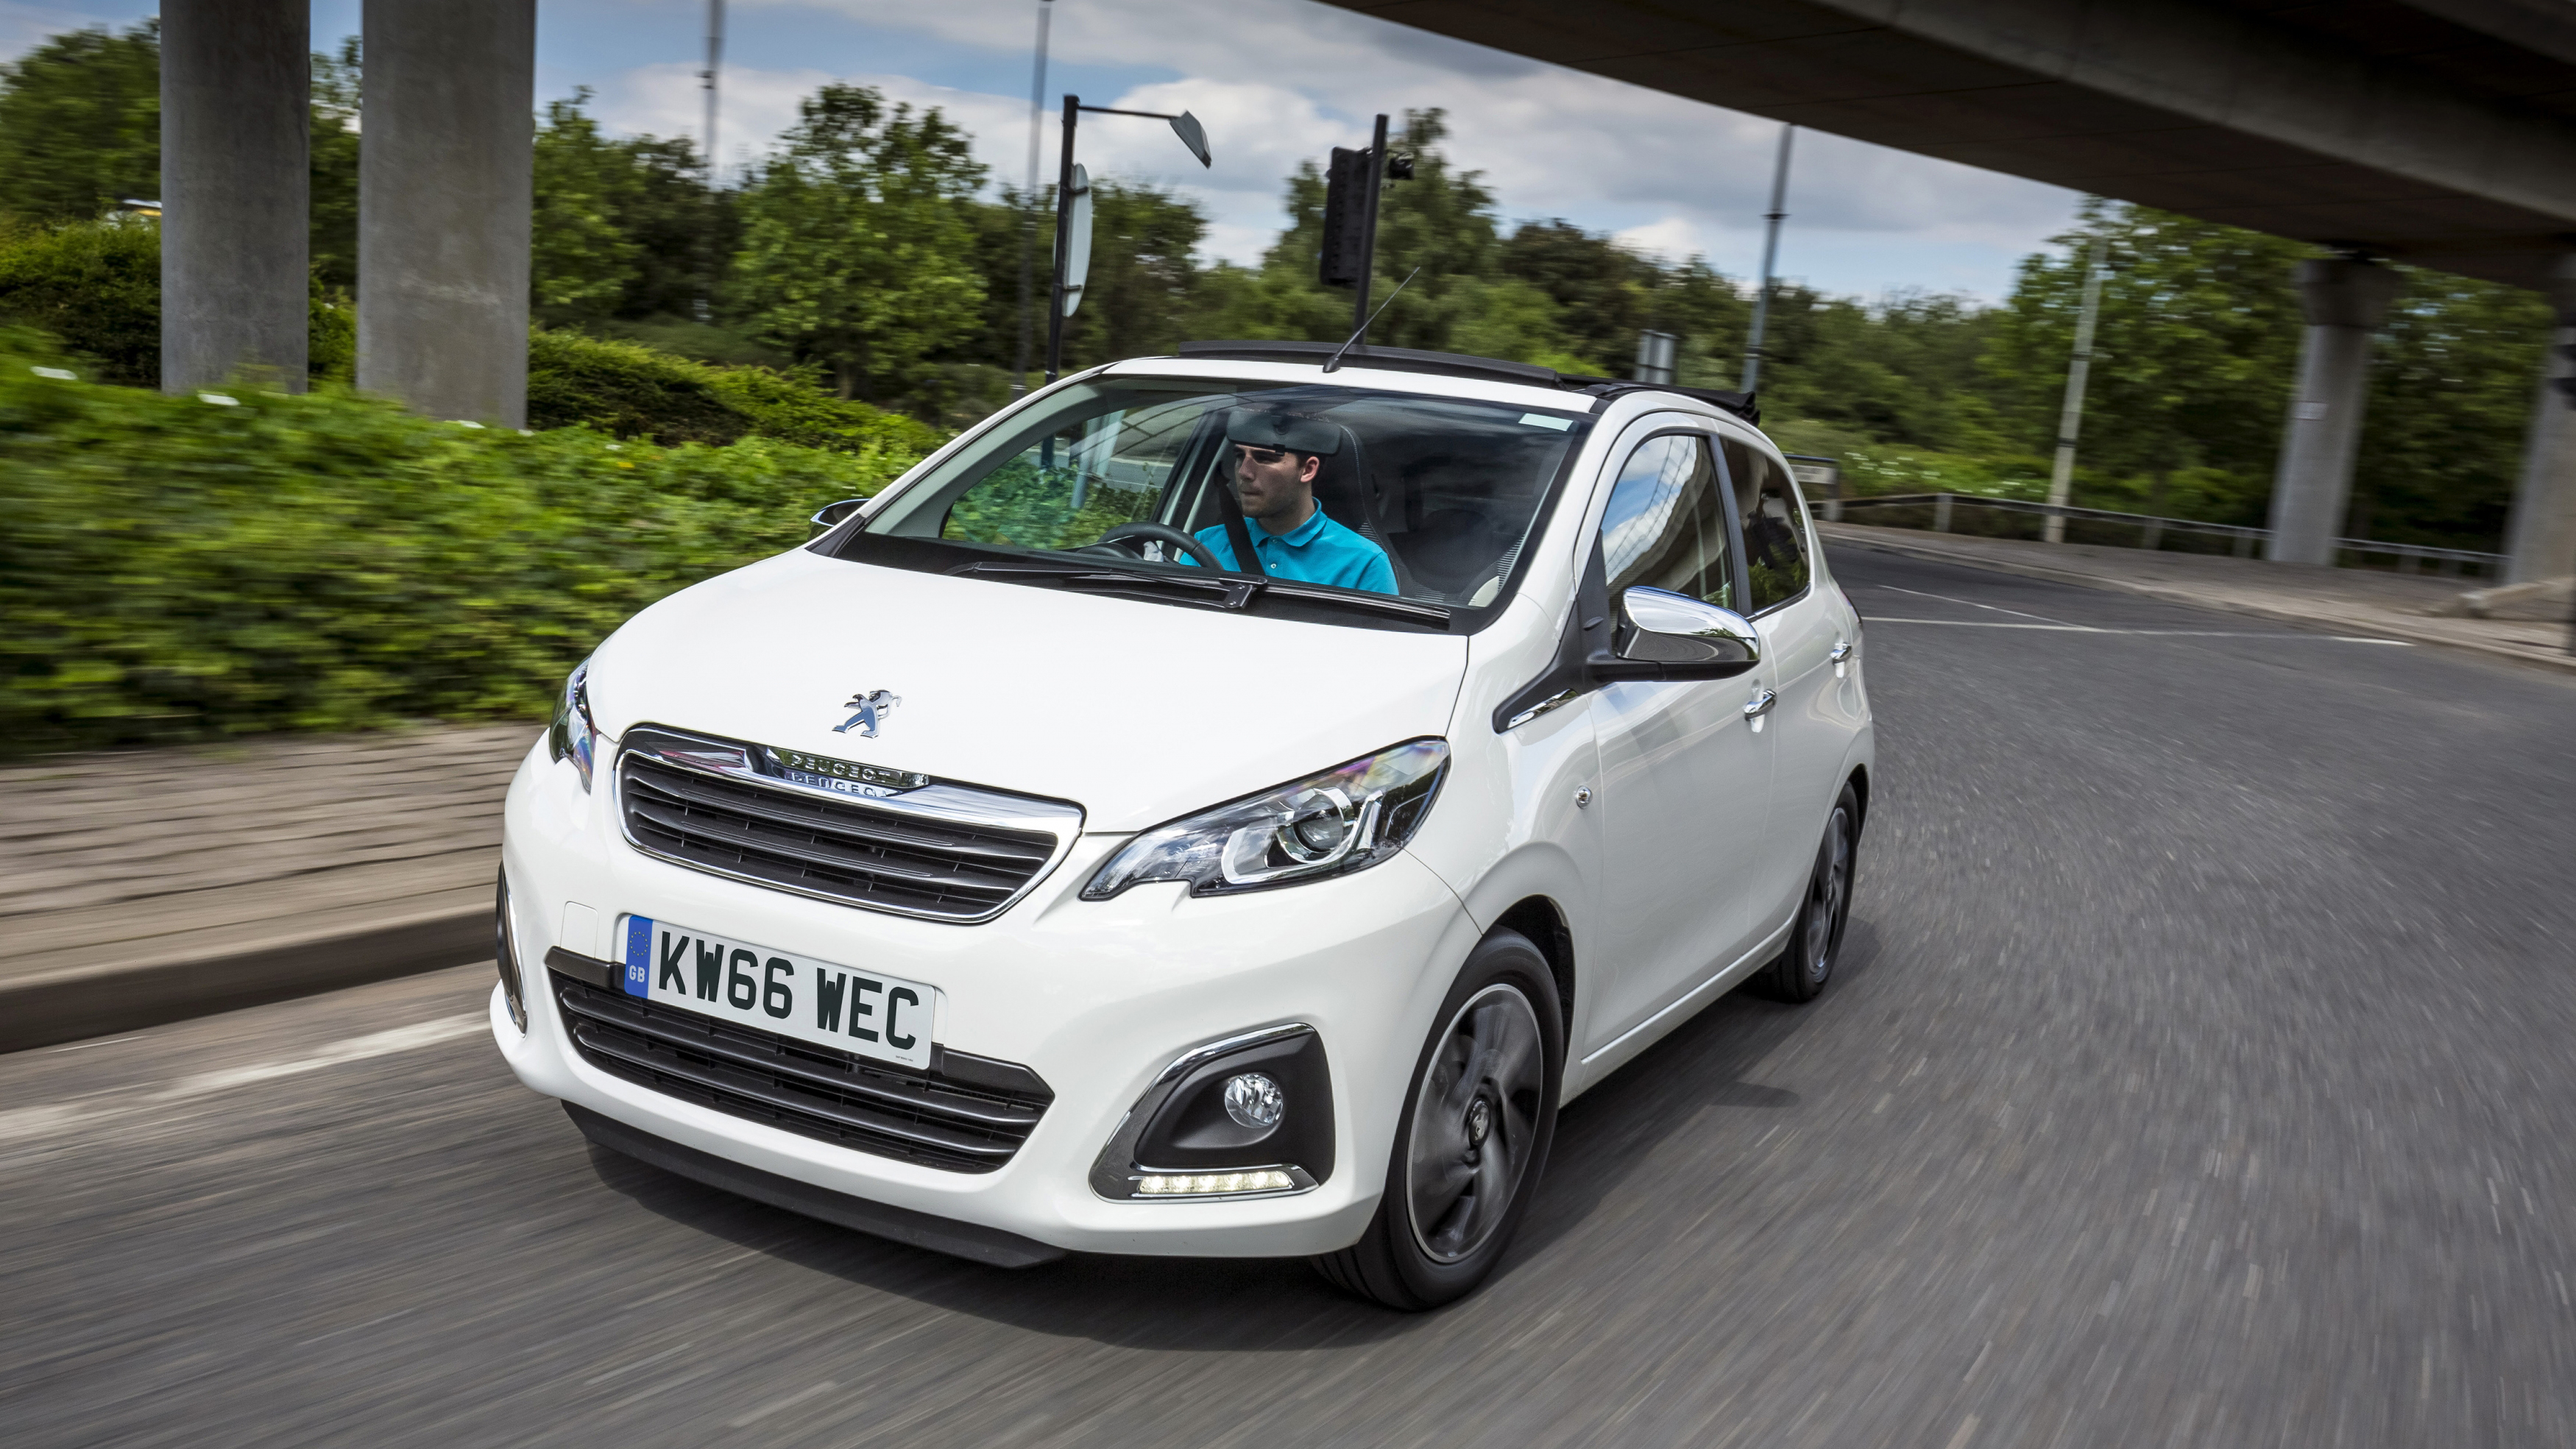 peugeot 108 review and buying guide: best deals and prices | buyacar